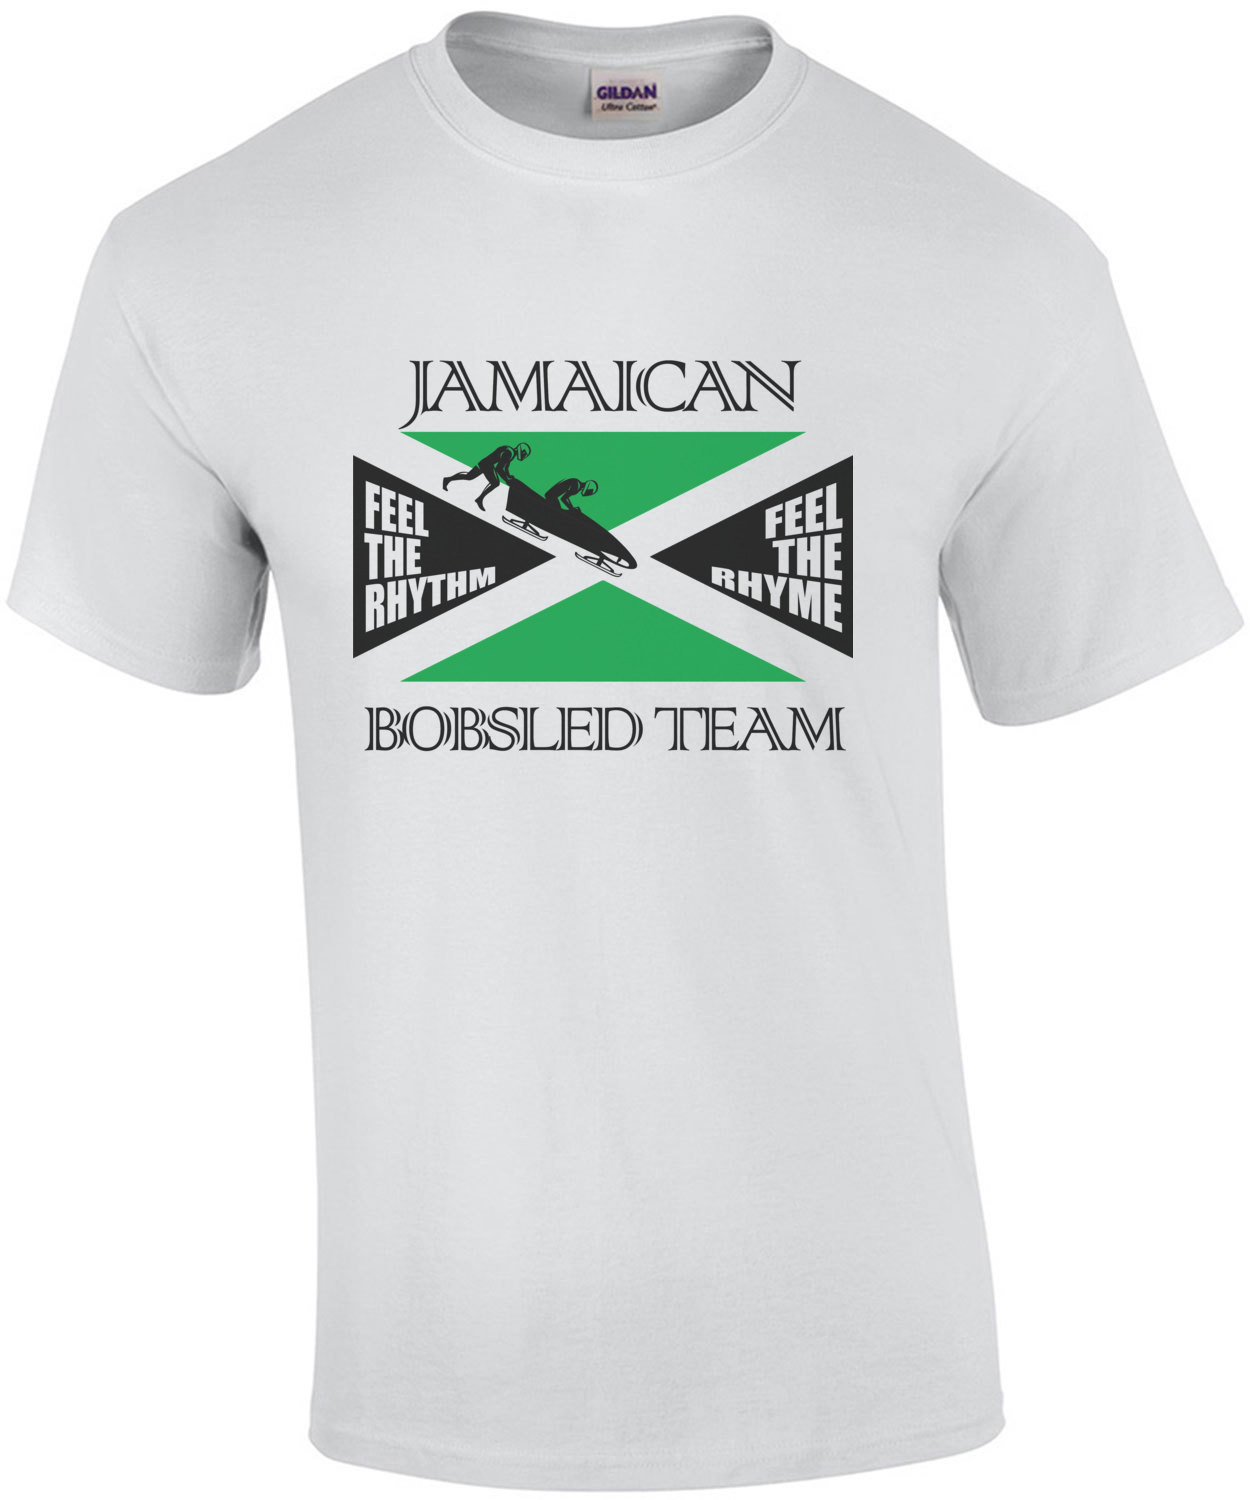 Jamaican Bobsled Team - Cool Runnings T-Shirt - 90's tshirt